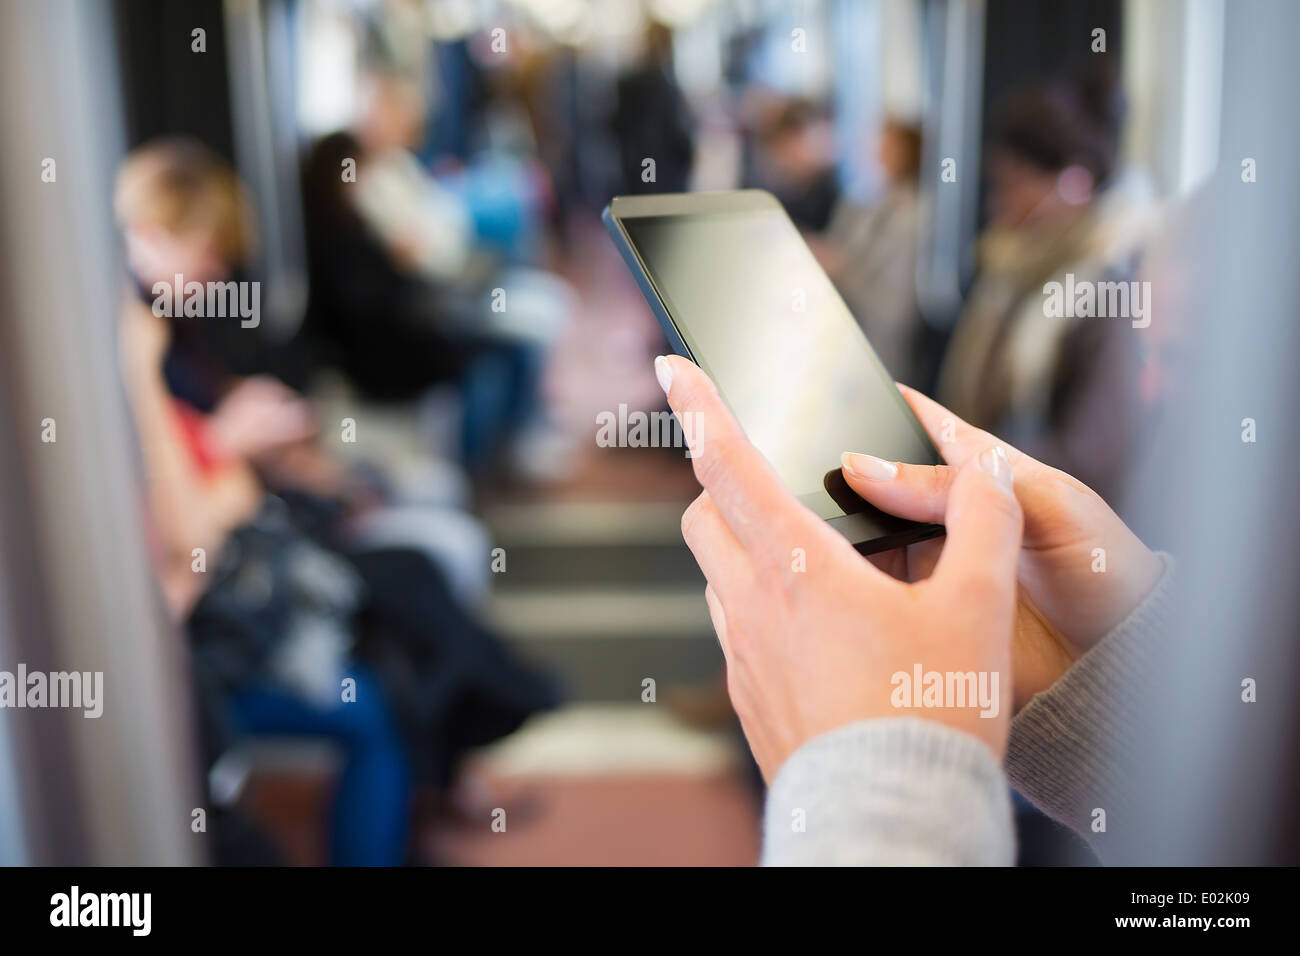 Female mobile phone hand underground message sms e-mail - Stock Image